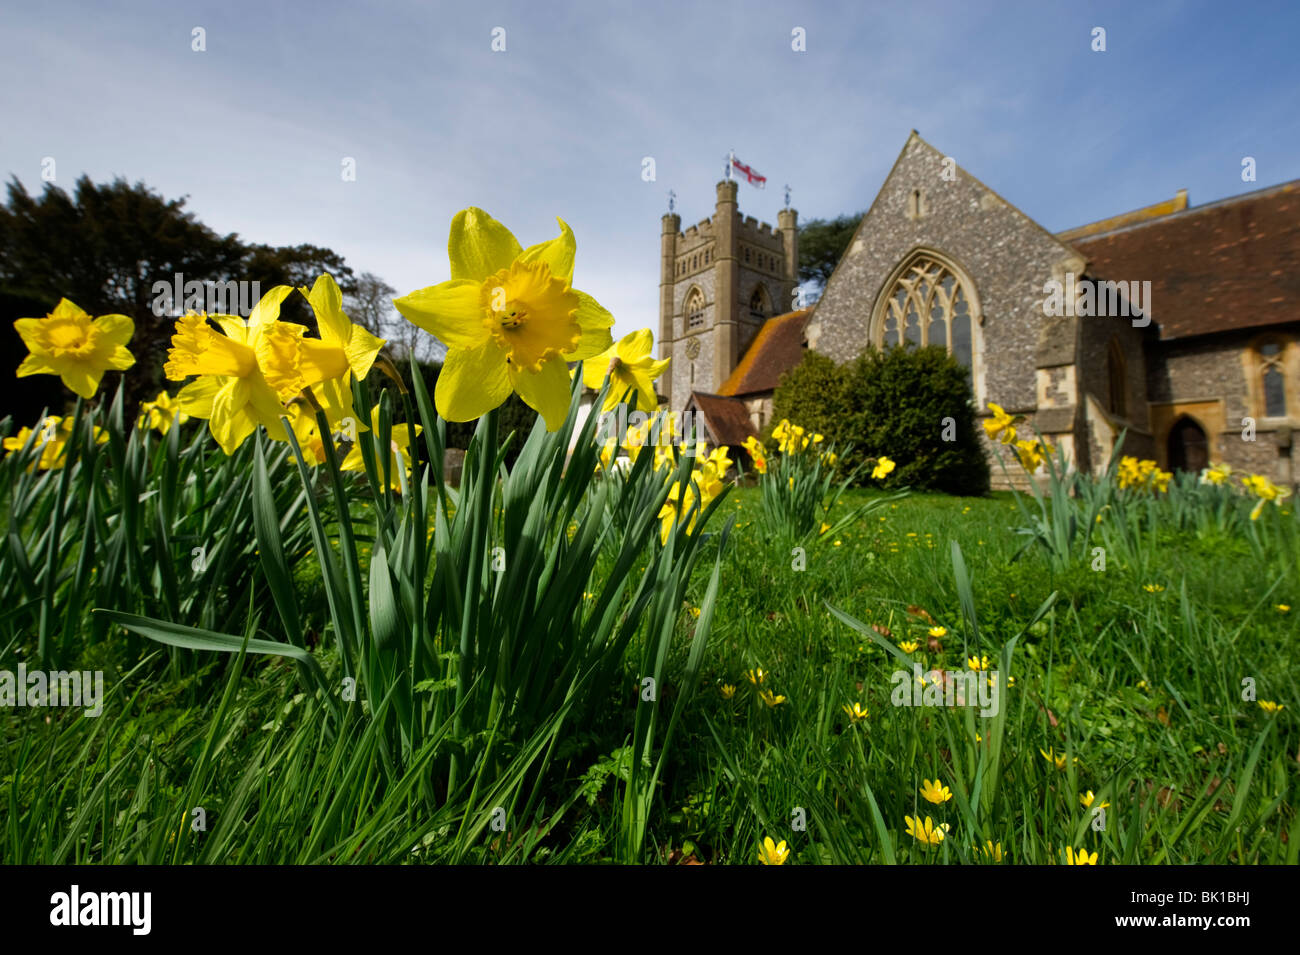 Churchyard Spring daffodils in the grounds of St Mary the Virgin parish church Hambleden Buckinghamshire UK - Stock Image